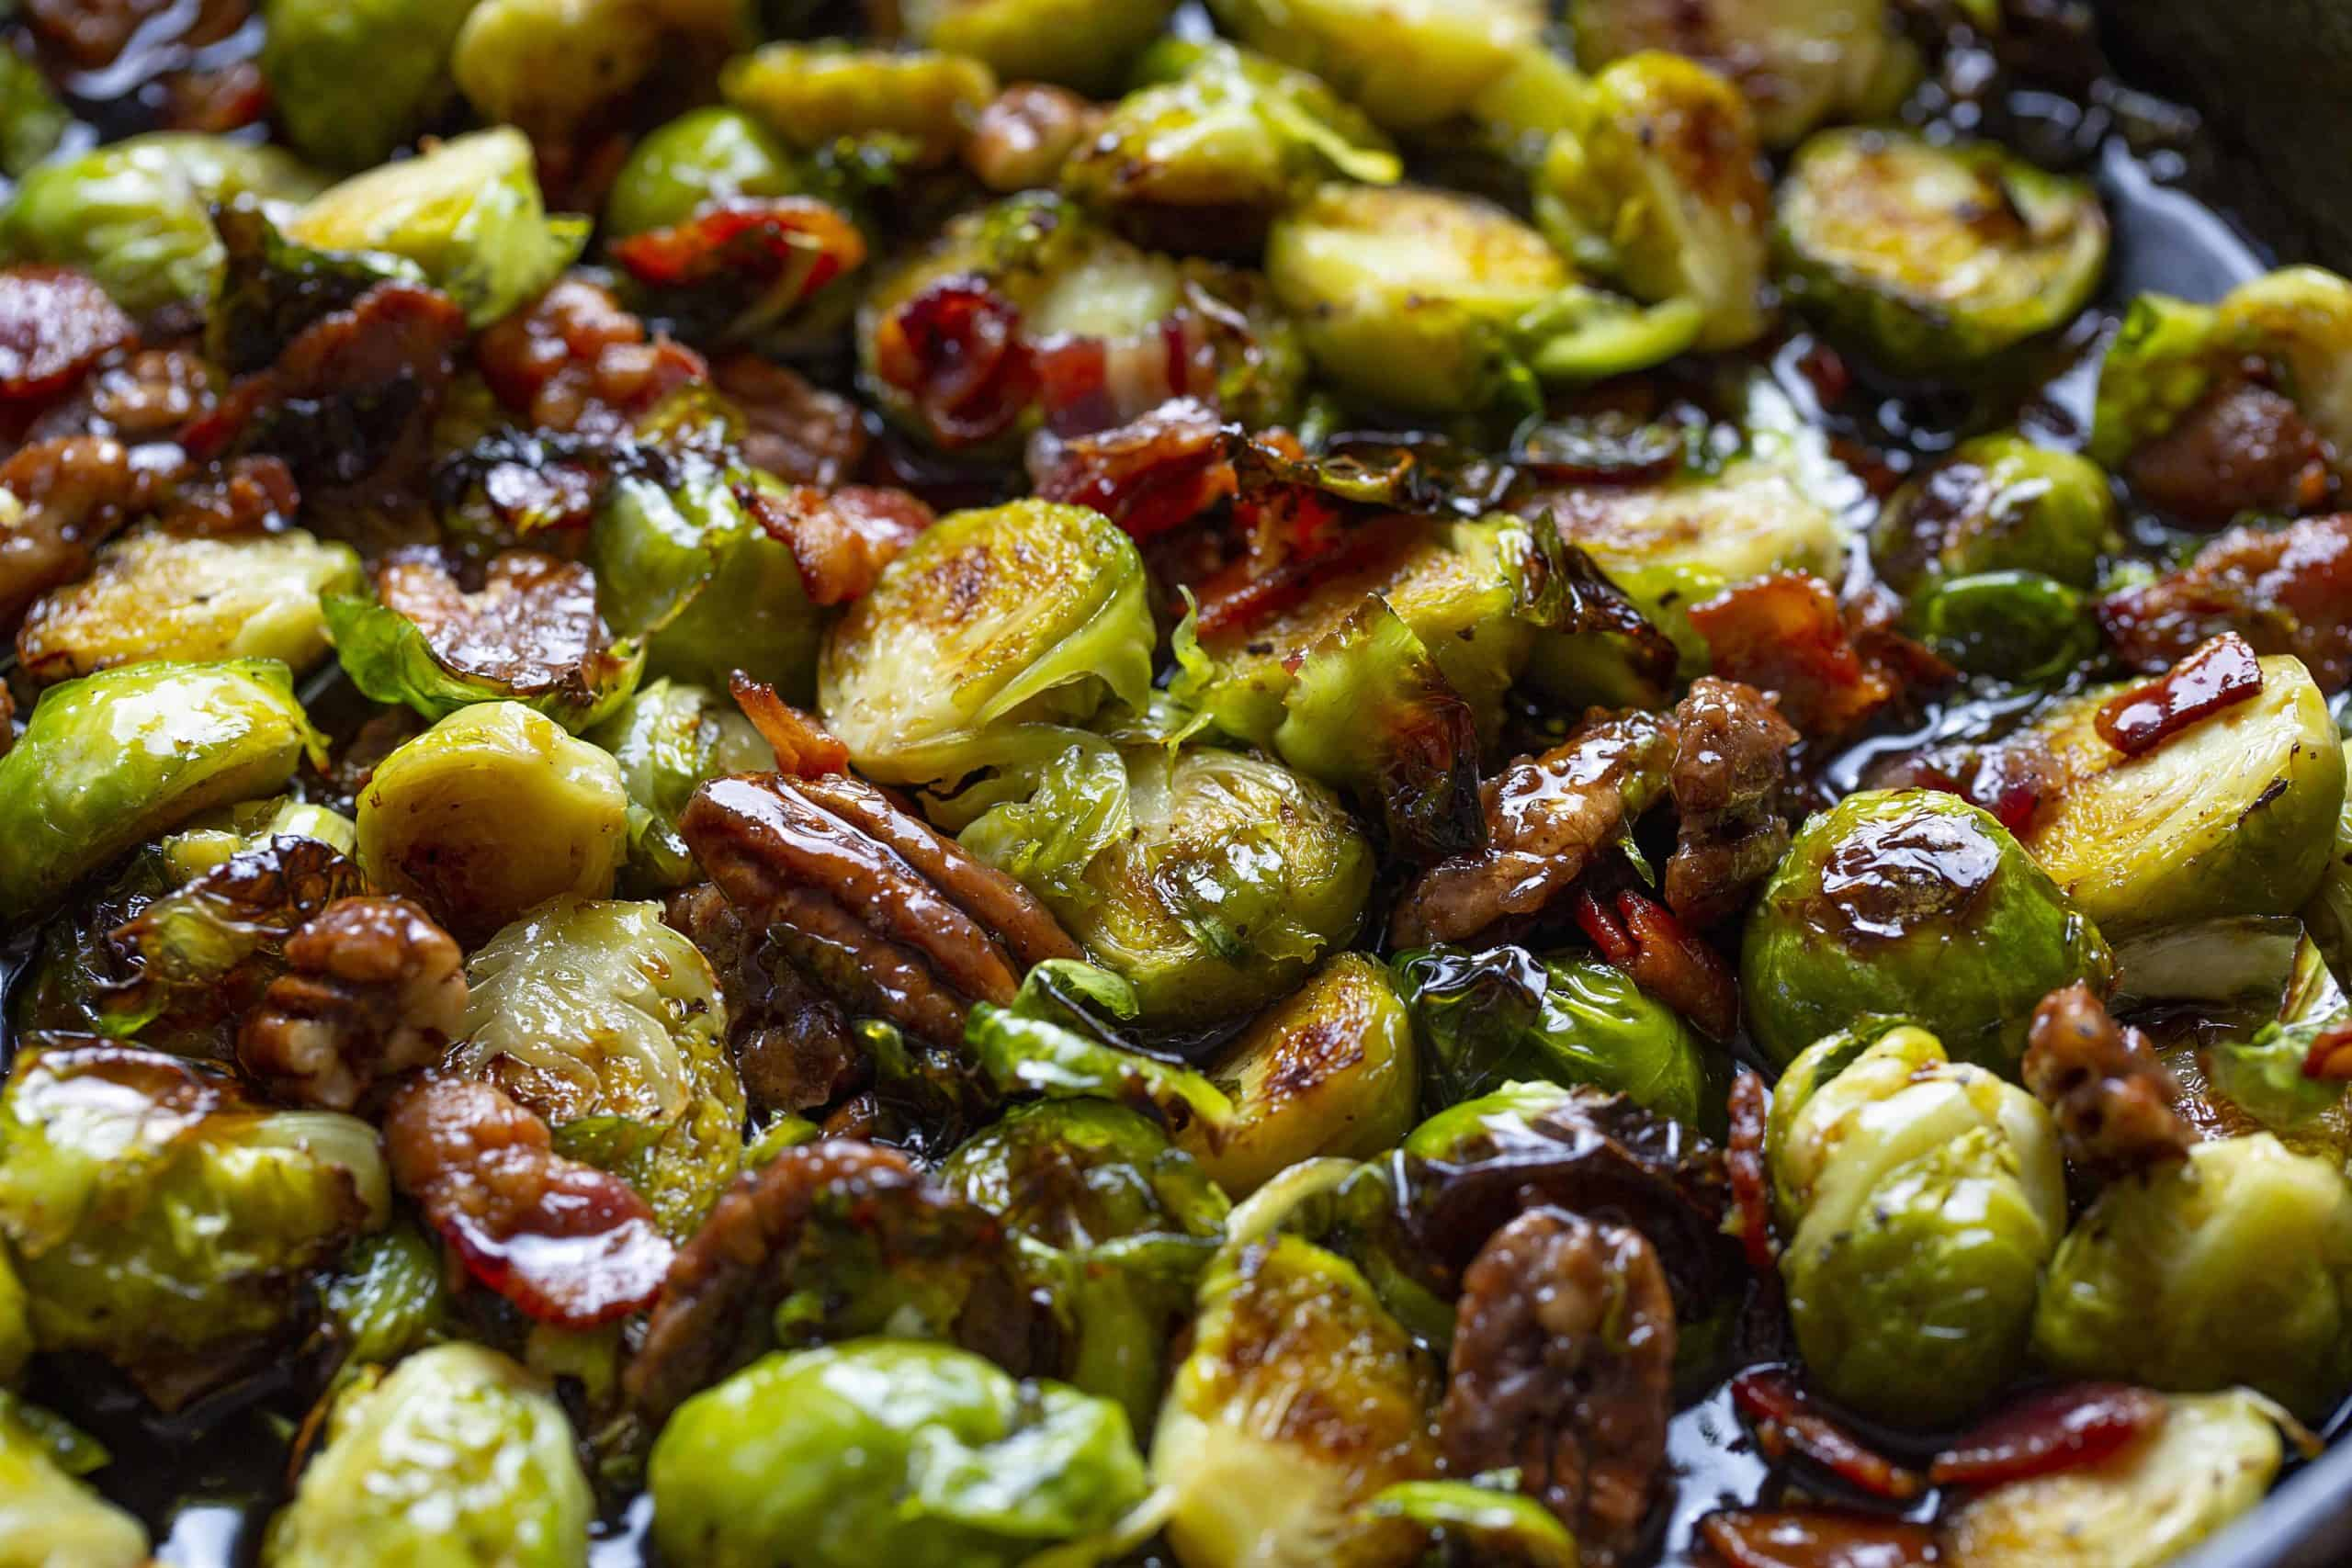 Brussel Sprouts with Bacon, Pecan, and a Maple Syrup Bourbon Glaze